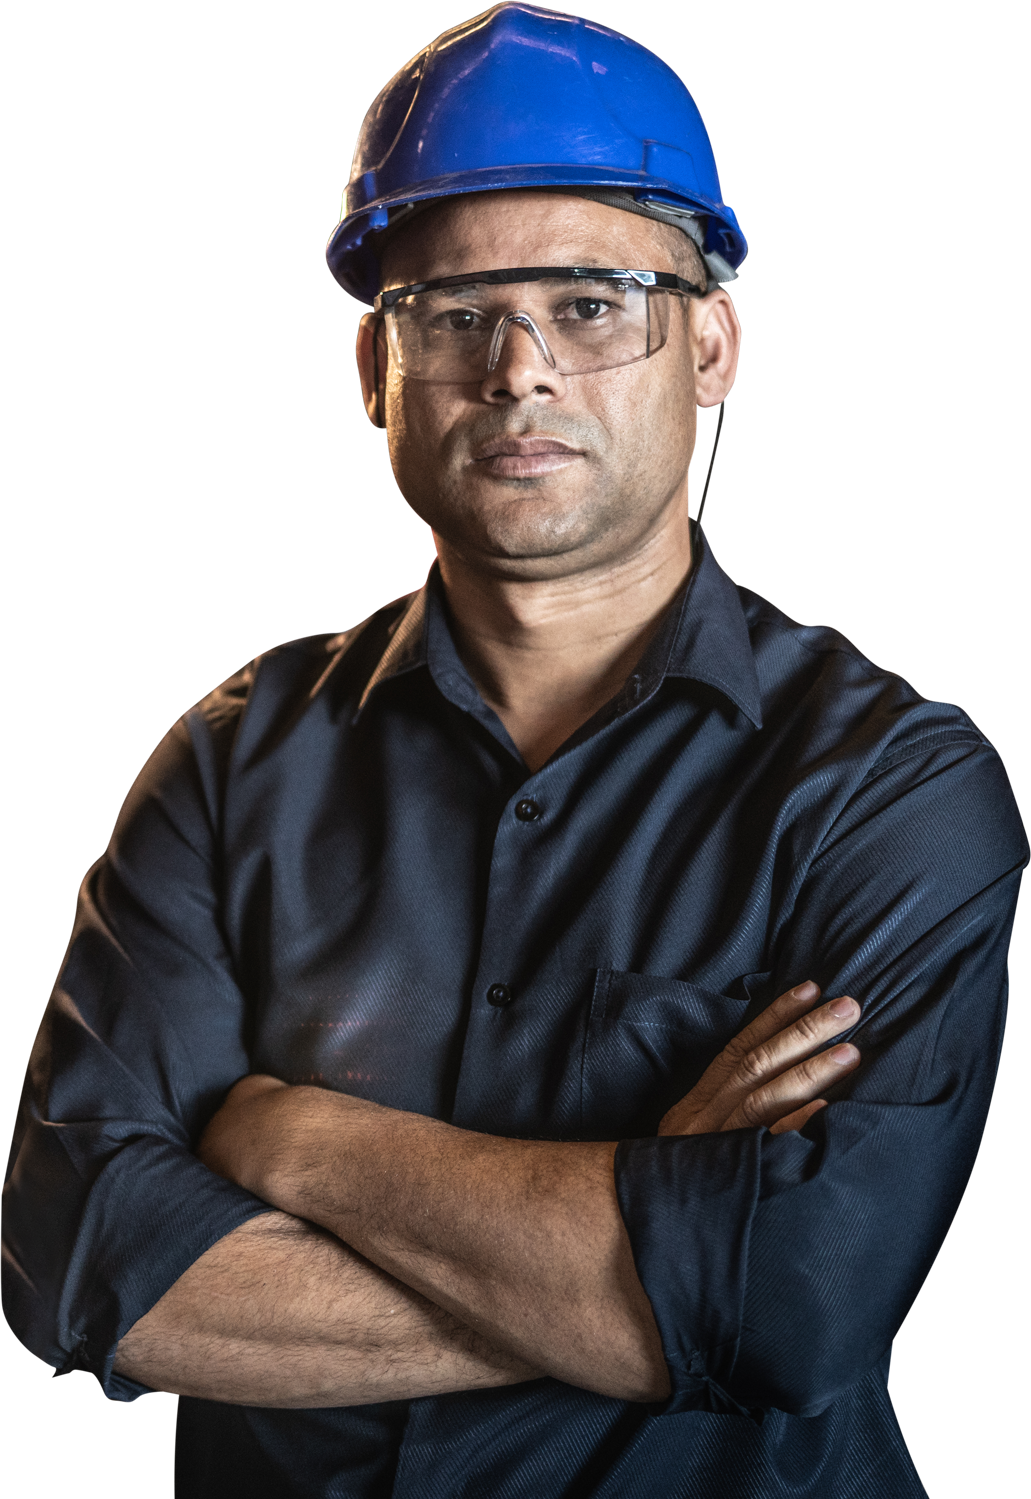 Photo of a man wearing a blue hard hat